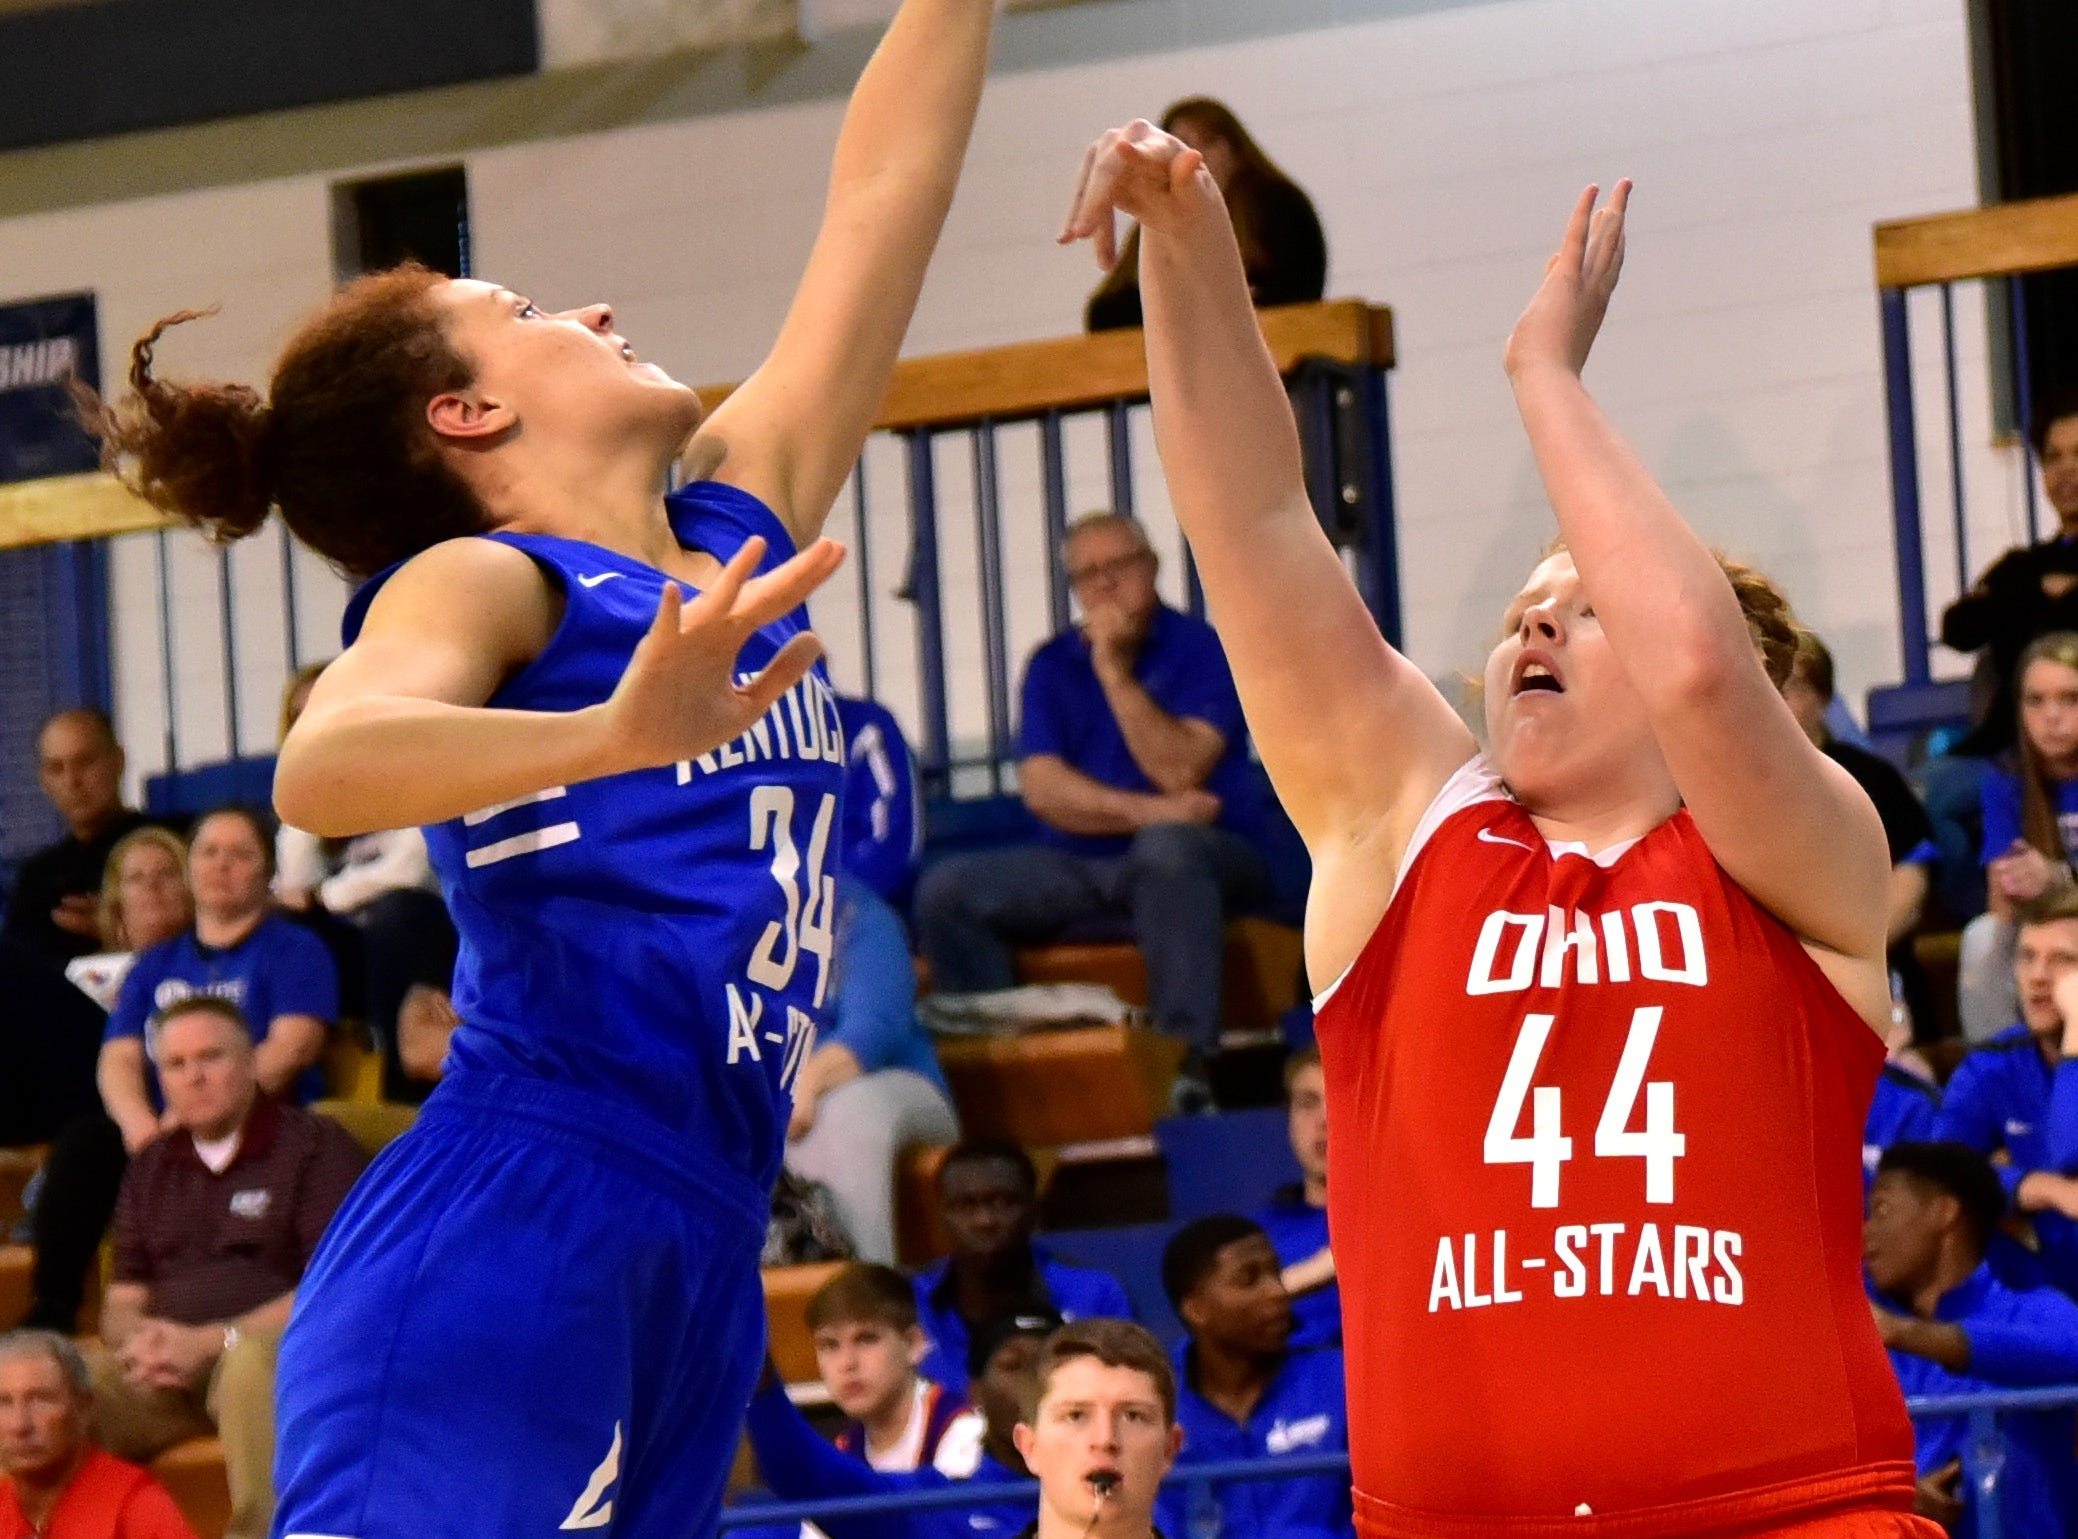 Cameron Browning of Male snuffs out Ursuline Academy's Emma Shaffer's (44) jump shot in the first half at the 28th Annual Ohio-Kentucky All Star Games played at Thomas More University, April 13, 2019